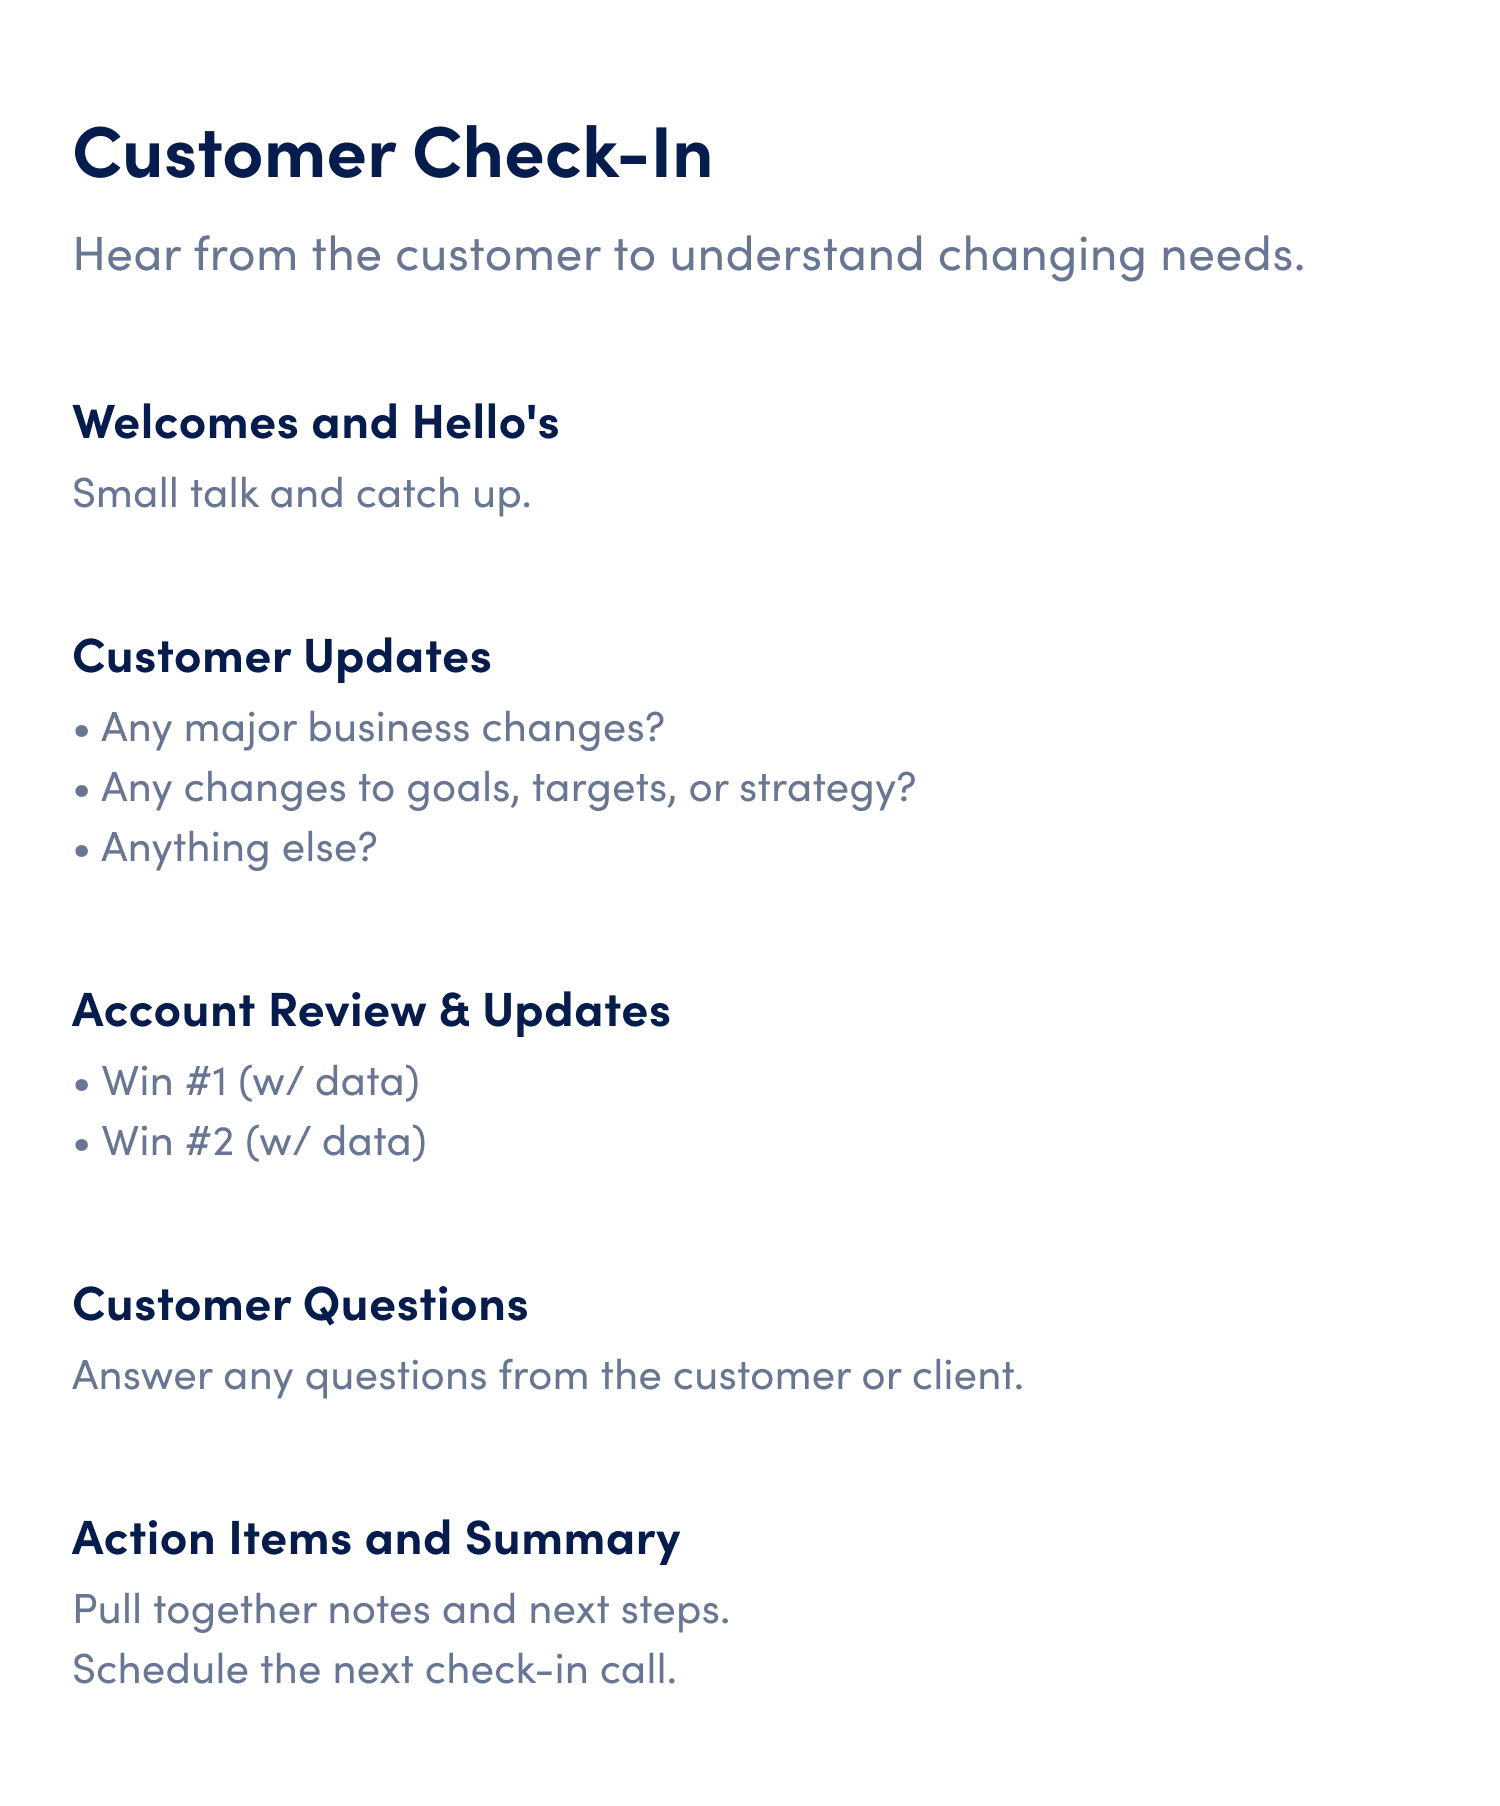 customer check in meeting agenda template